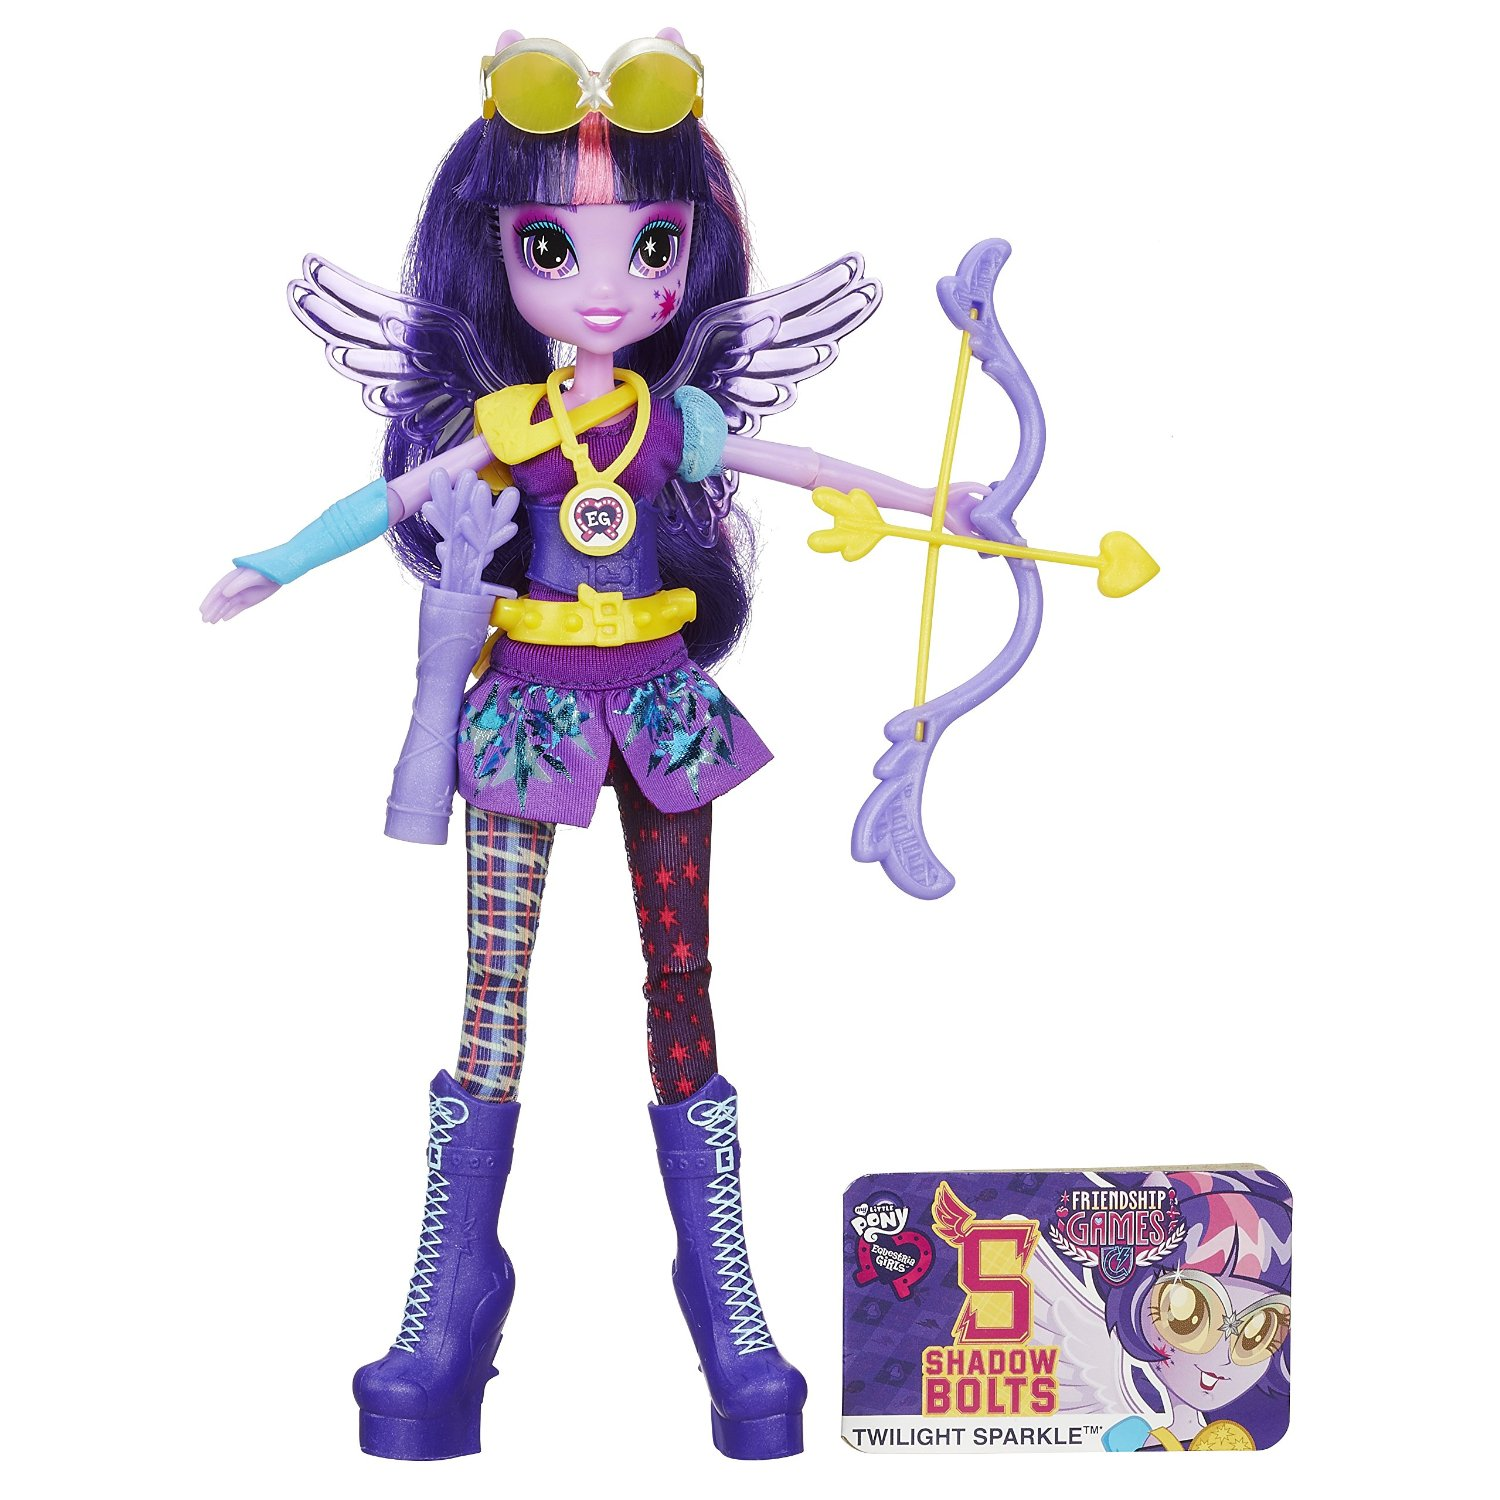 Best My Little Pony Toys And Dolls For Kids : Equestria daily mlp stuff friendship games